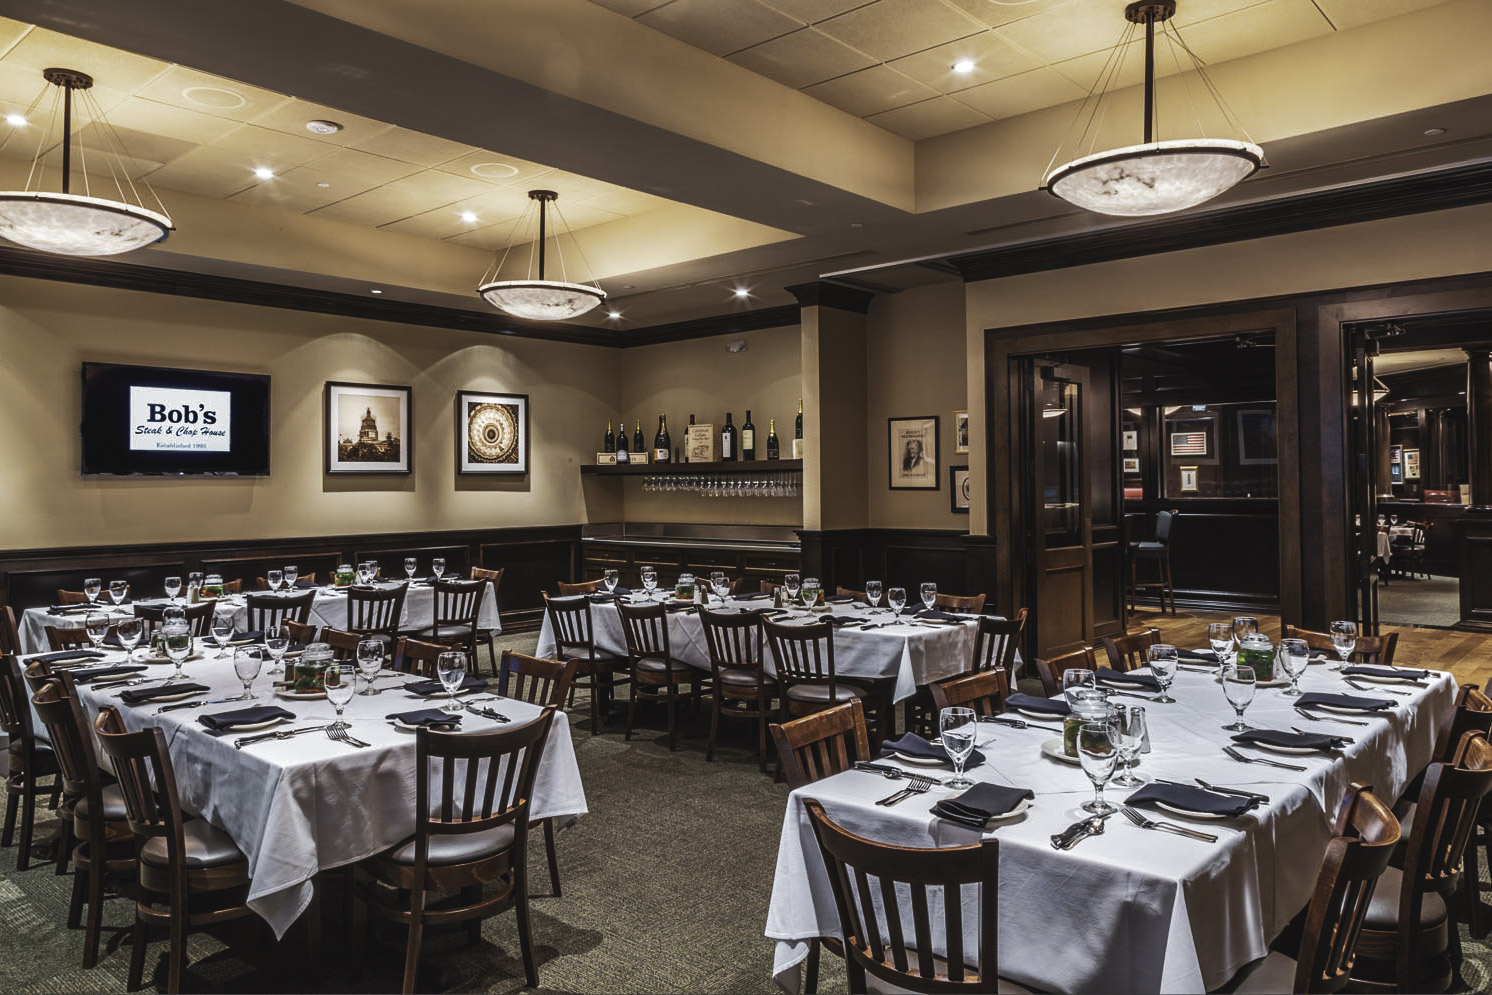 Bob's Steak & Chop House - San Antonio, TX (Private Dining)